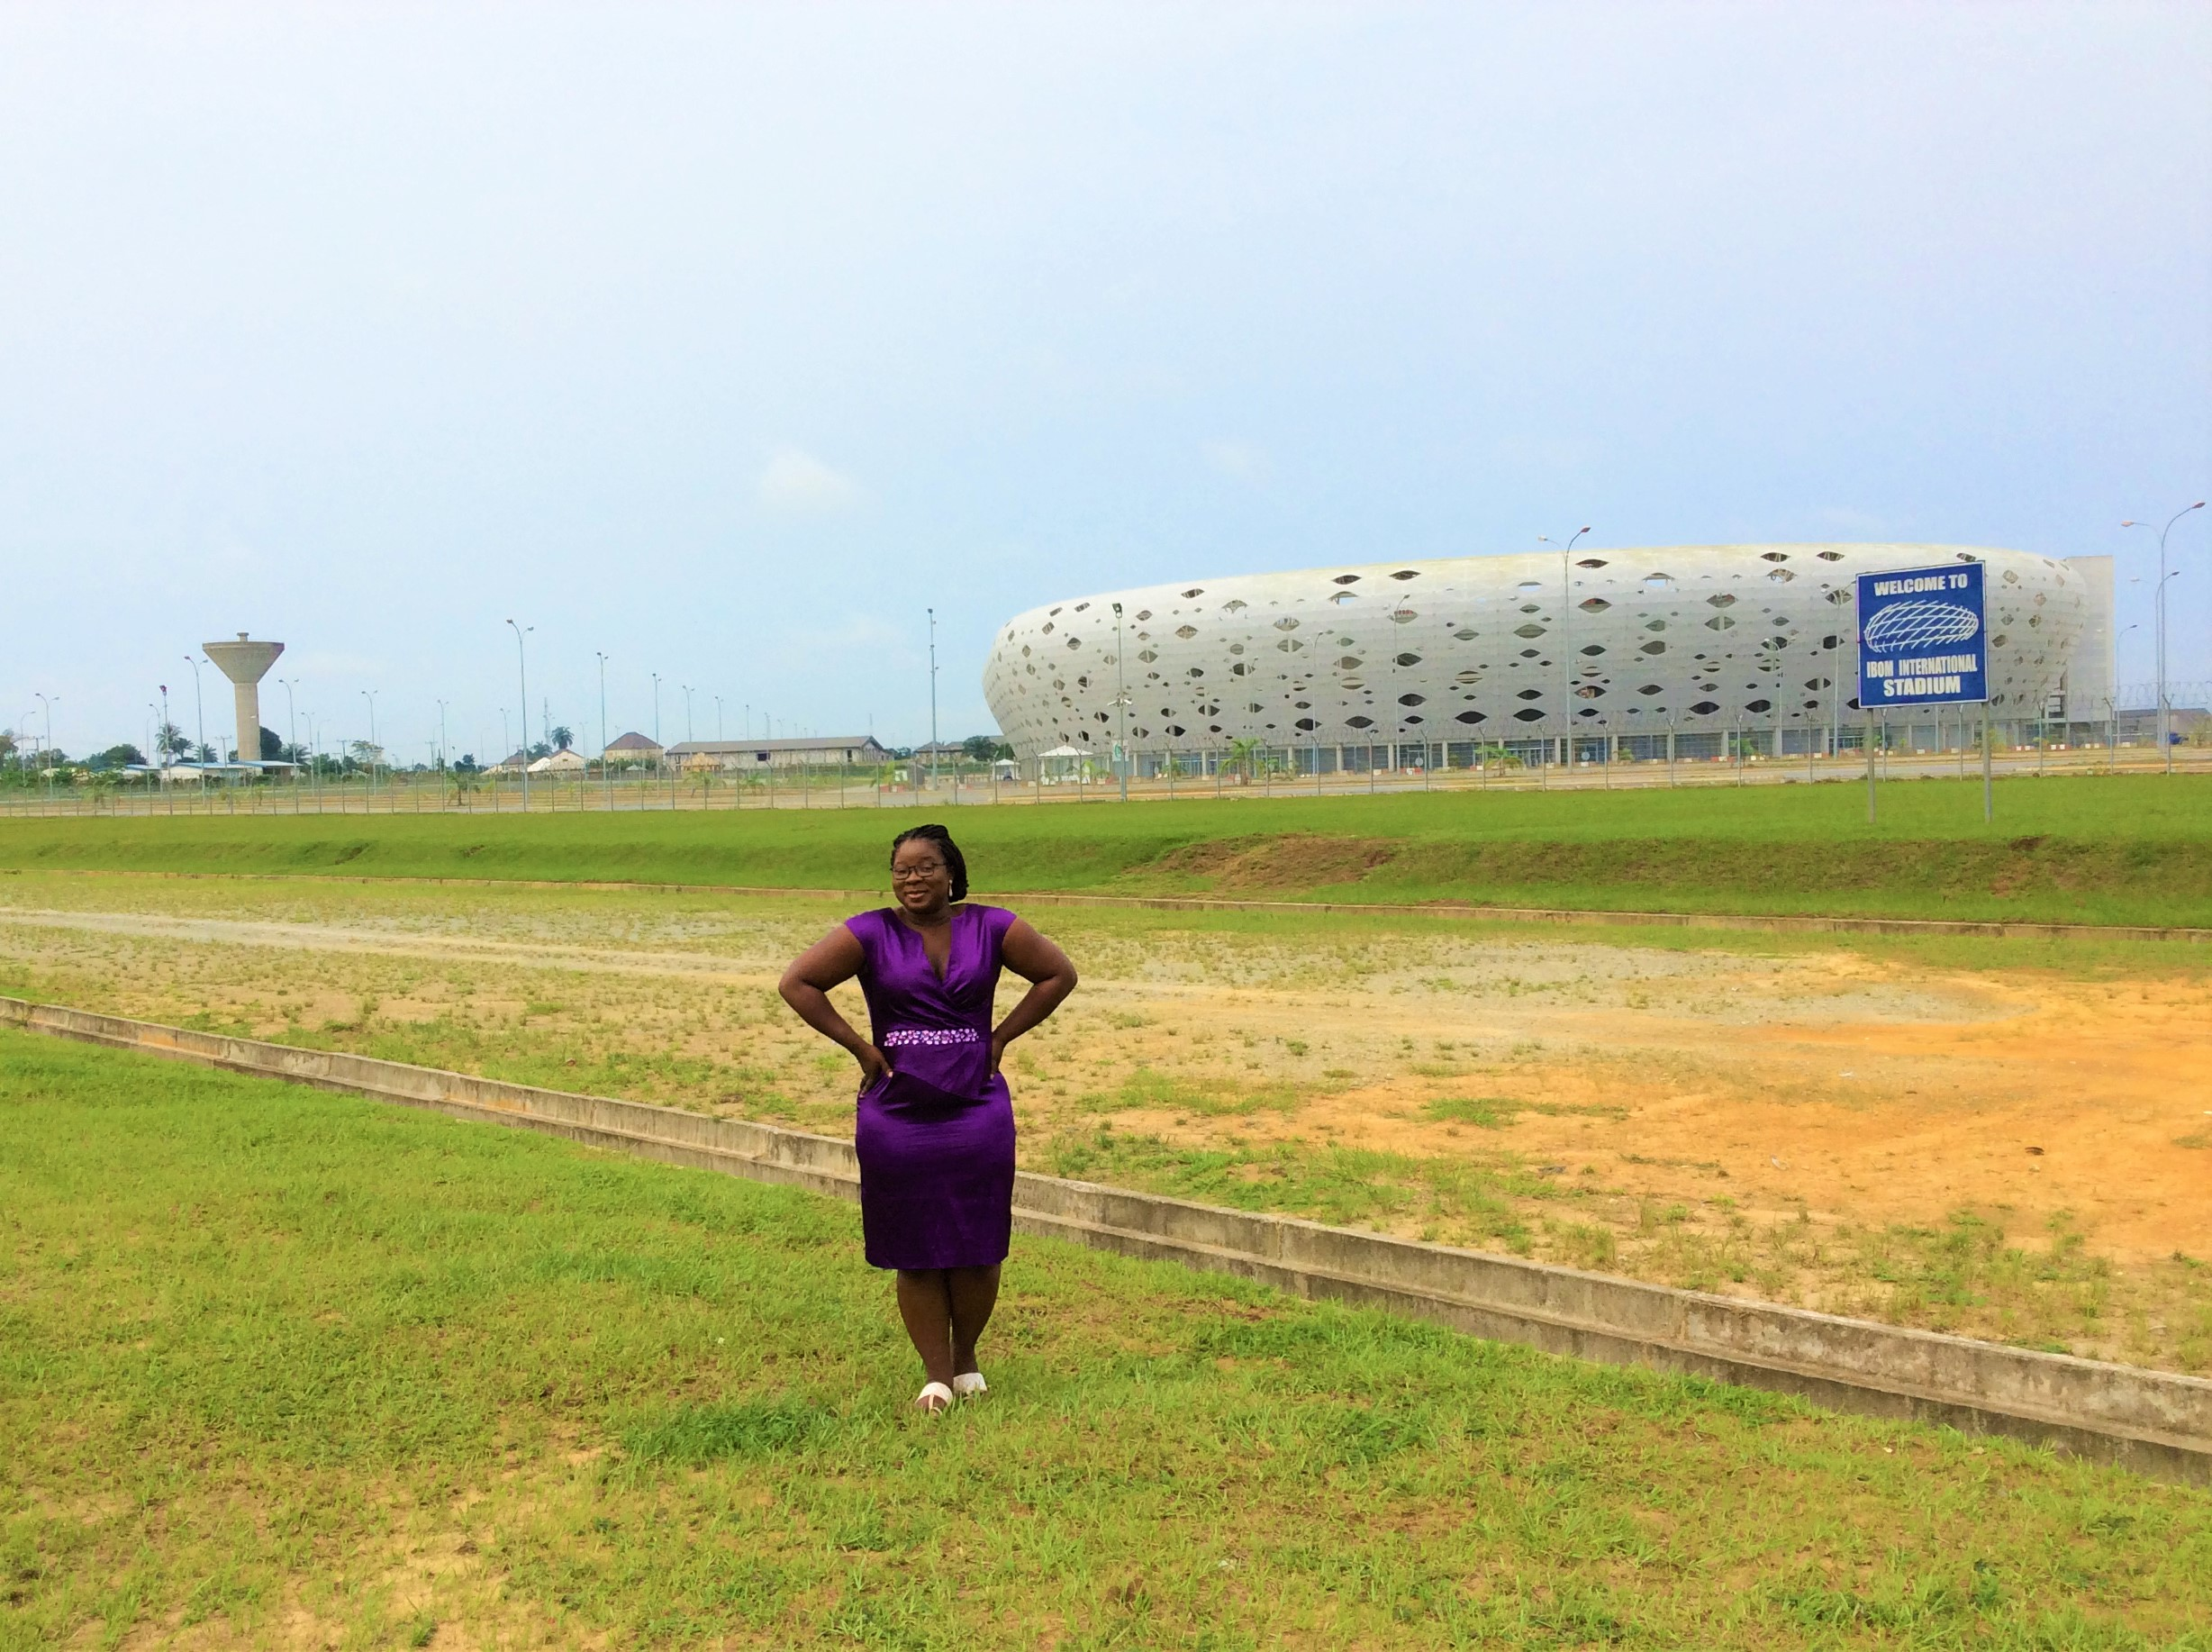 GODSWILL APKABIO INTERNATIONAL STADIUM. The 30,000 seater stadium is used for international matches and also serves as a center for various social, cultural, and religious events. The construction contract was awarded in 2012 to Julius Berger and was completed in 2014 (JB doesn't play).Let's not forget the modeller, Allianz Arena.